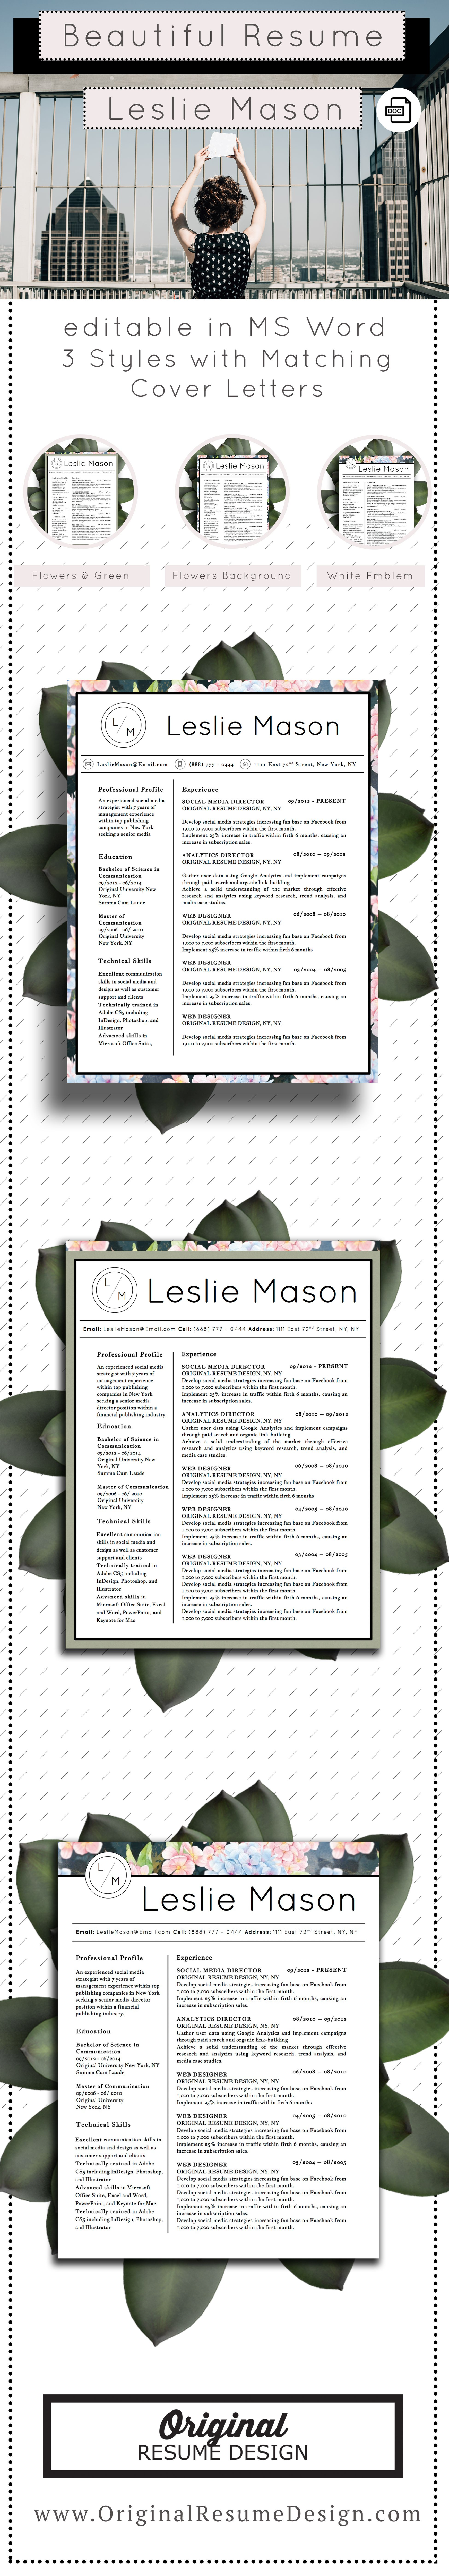 Resume Template In Microsoft Word 2017 Beautiful Resume Template For Microsoft Word With 3 Distinct